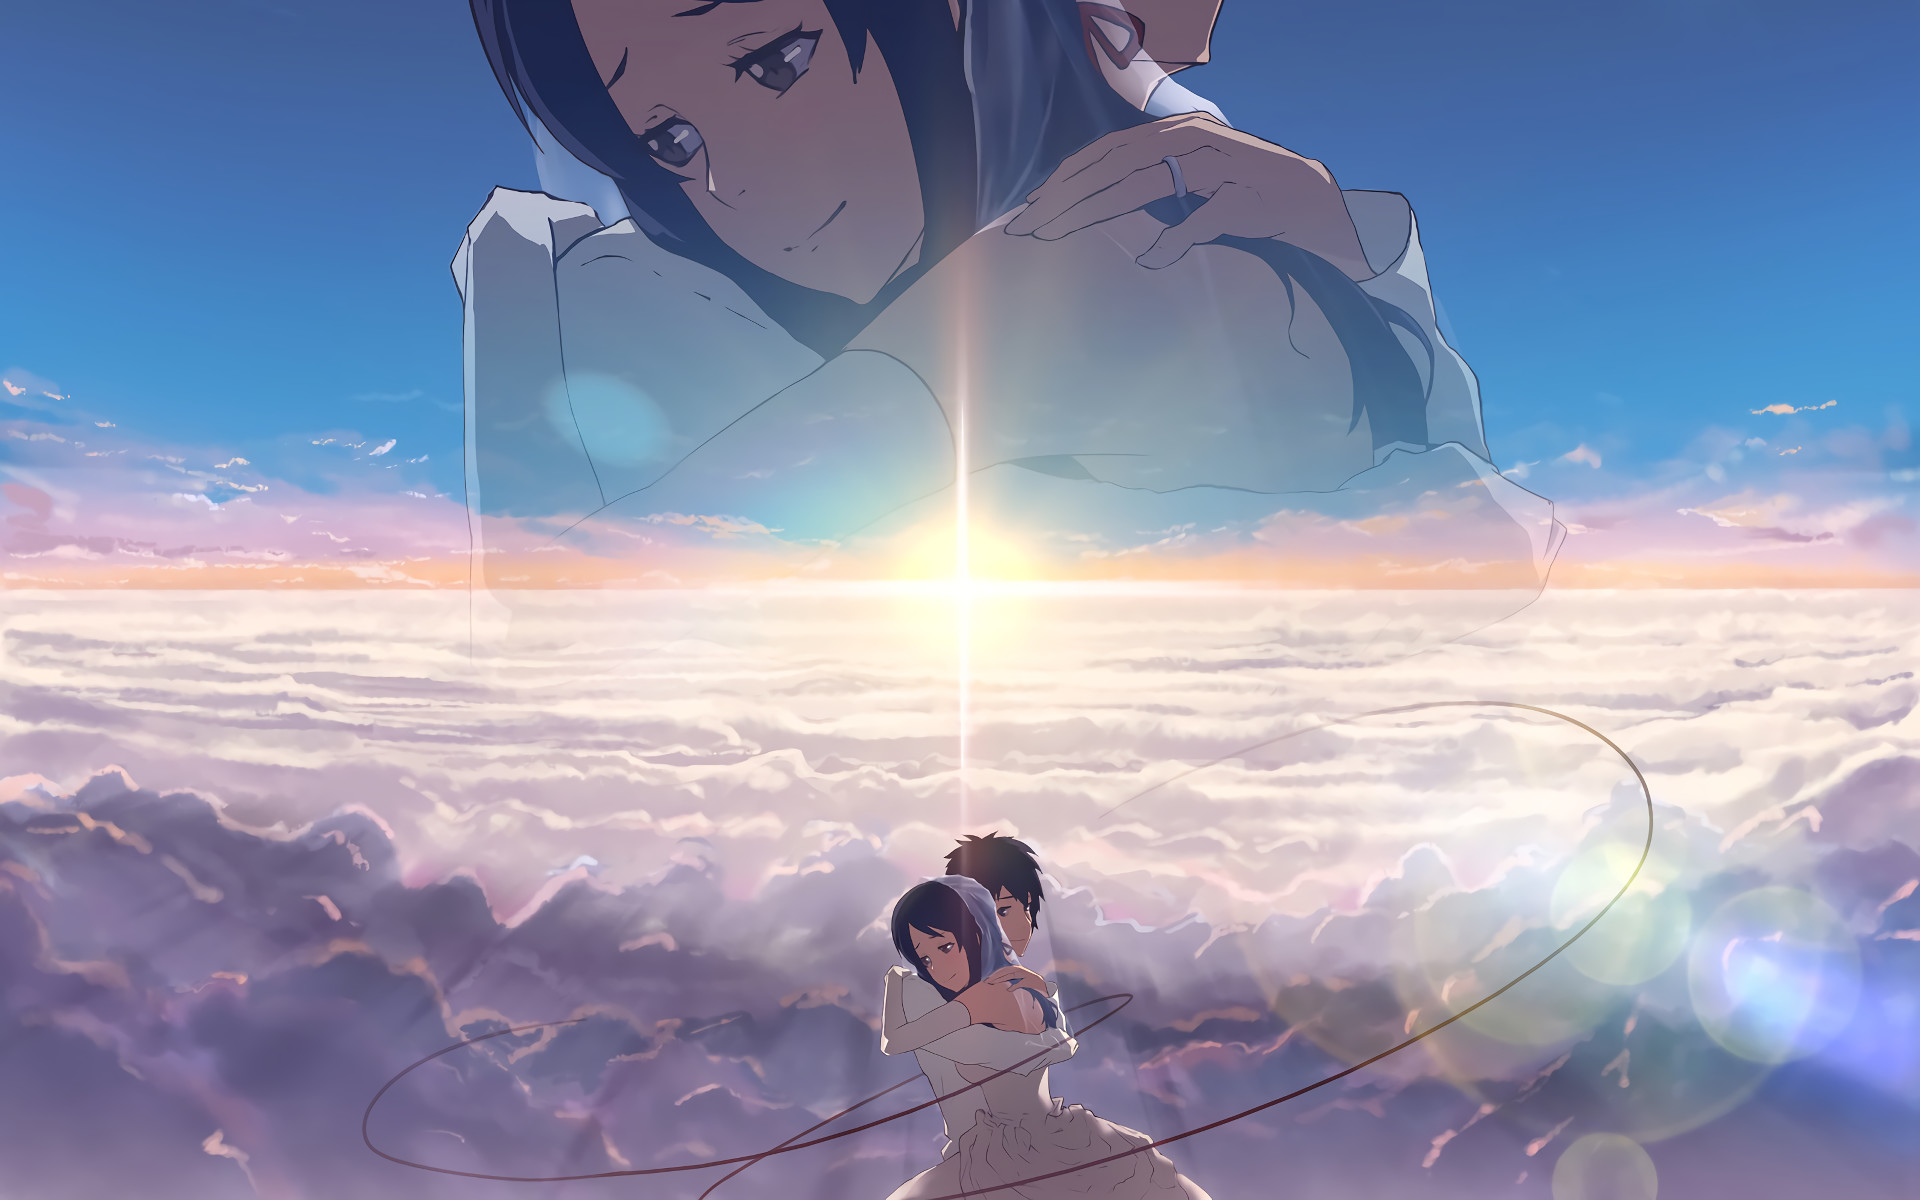 Search free kimi no na wa wallpapers on zedge and personalize your phone to suit you. Kimi No Na Wa Wallpapers (74+ images)